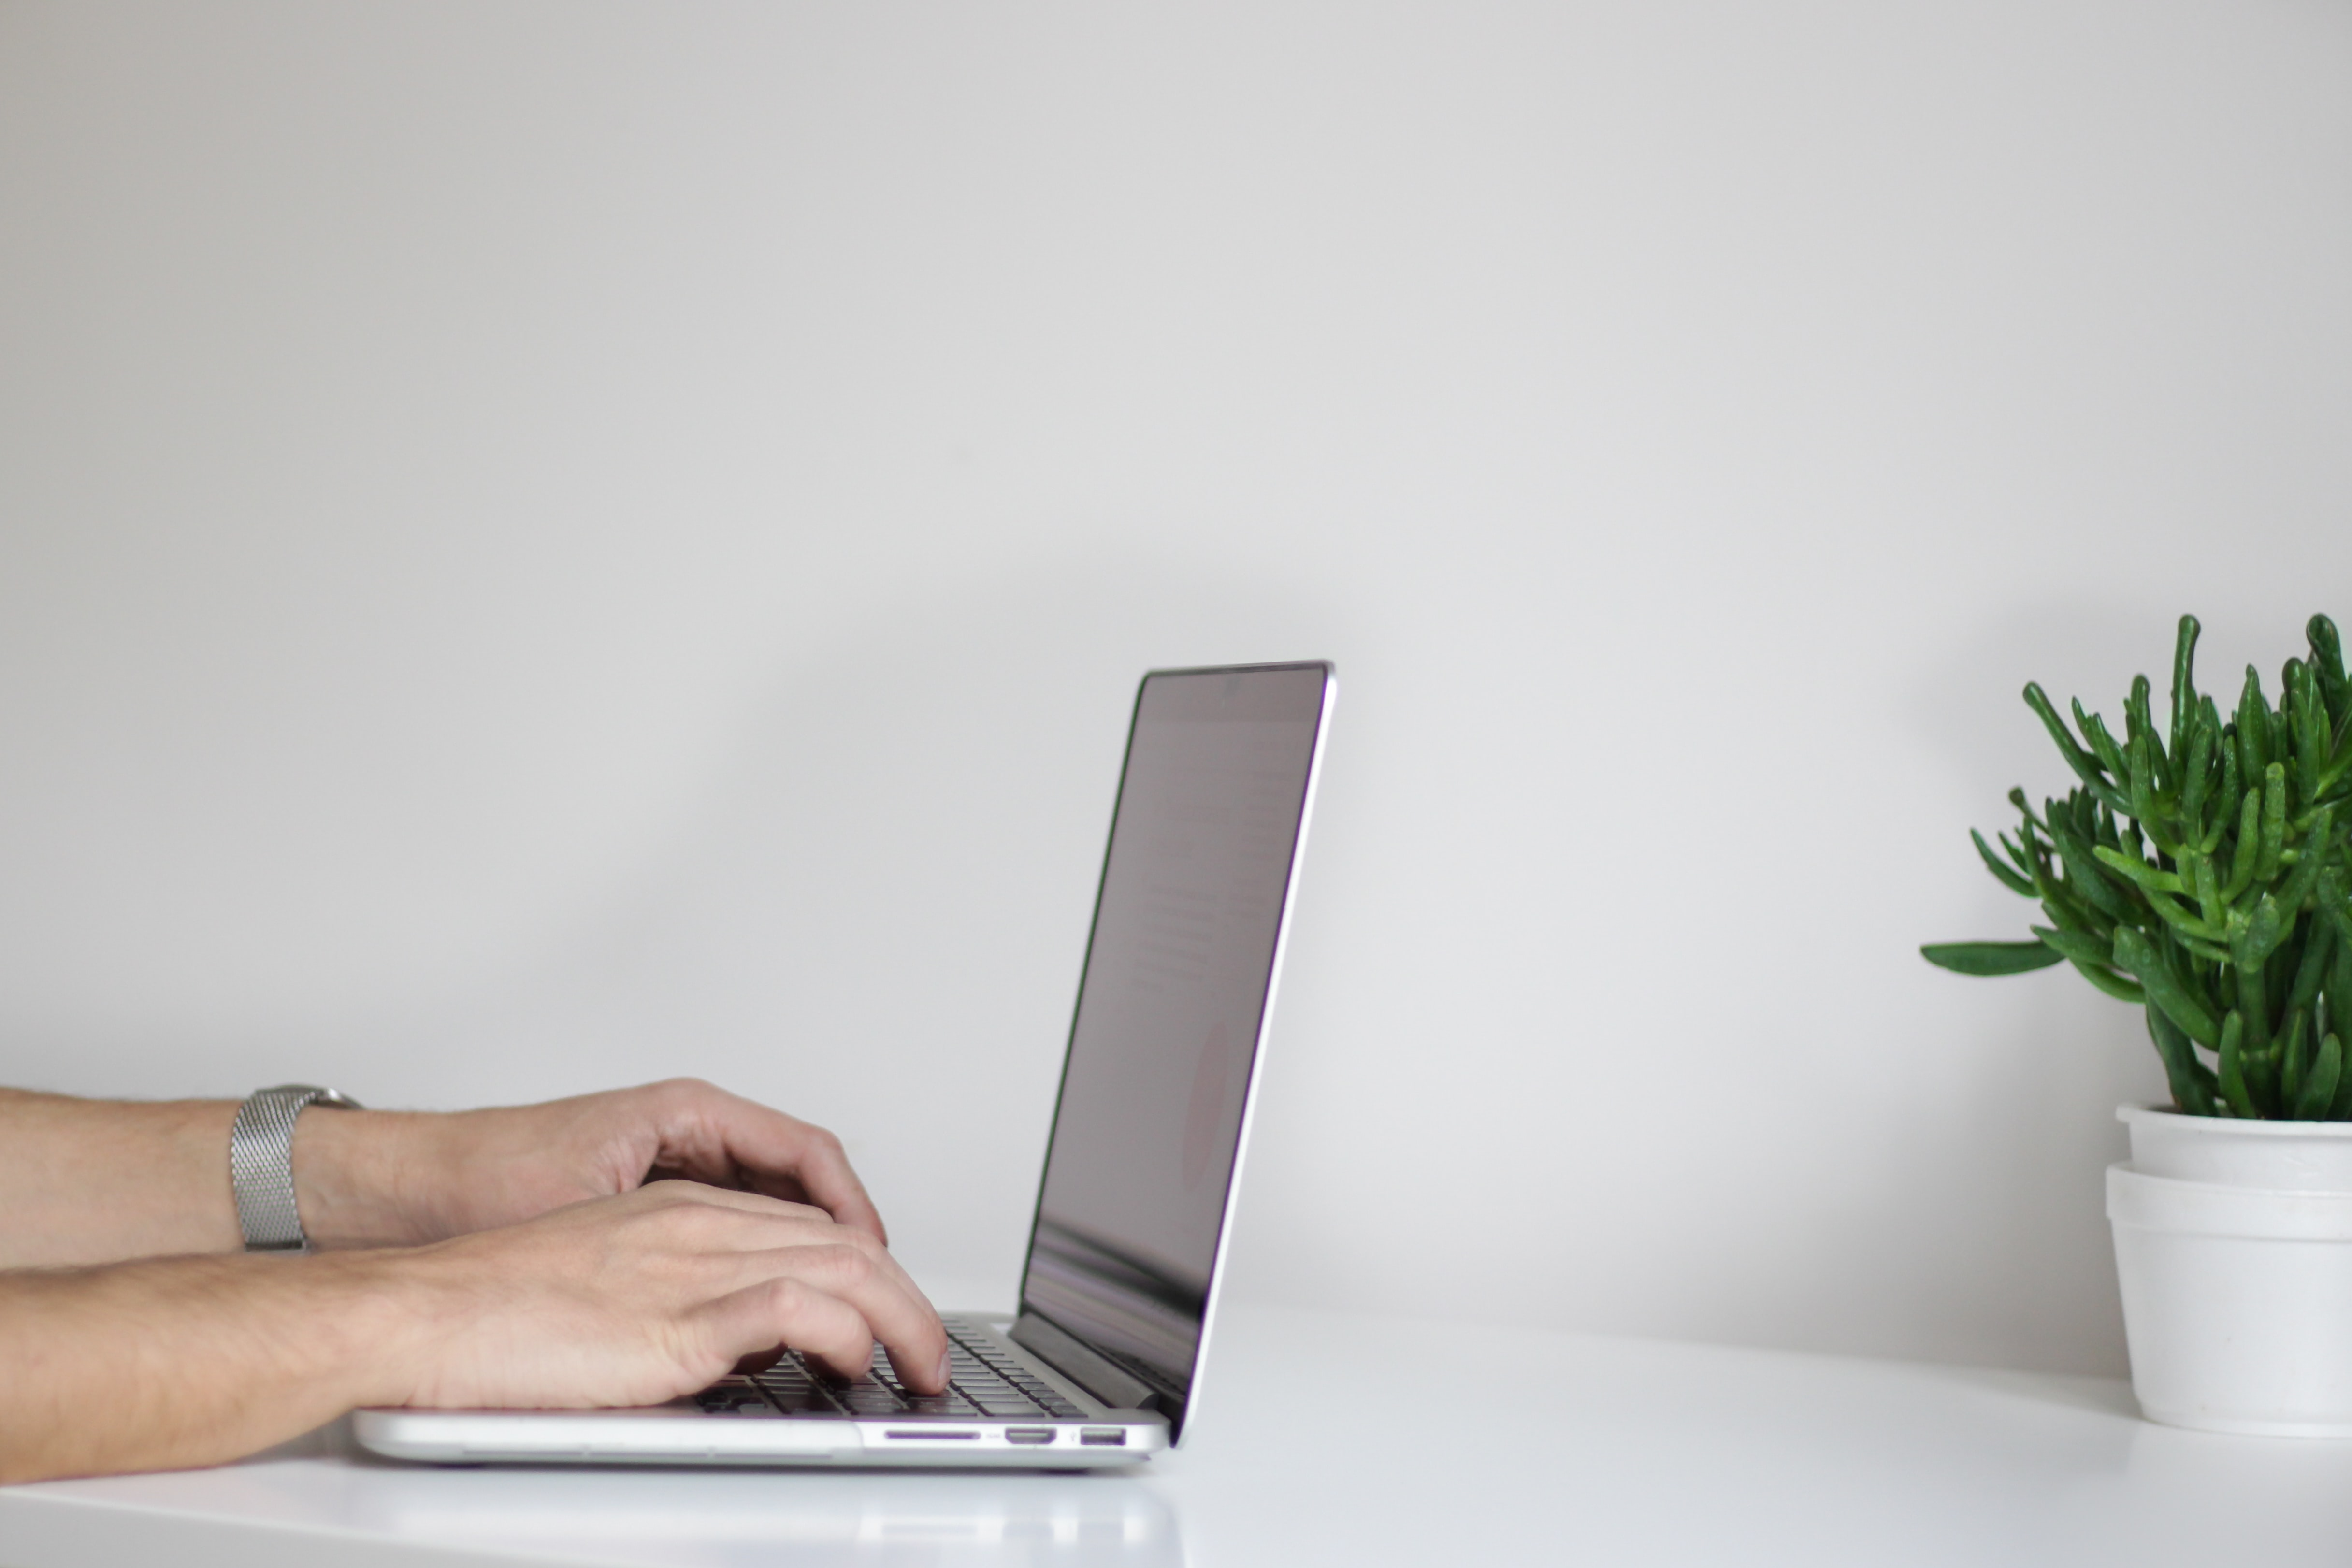 A man's hands typing on a laptop on a white desktop with a potted plant